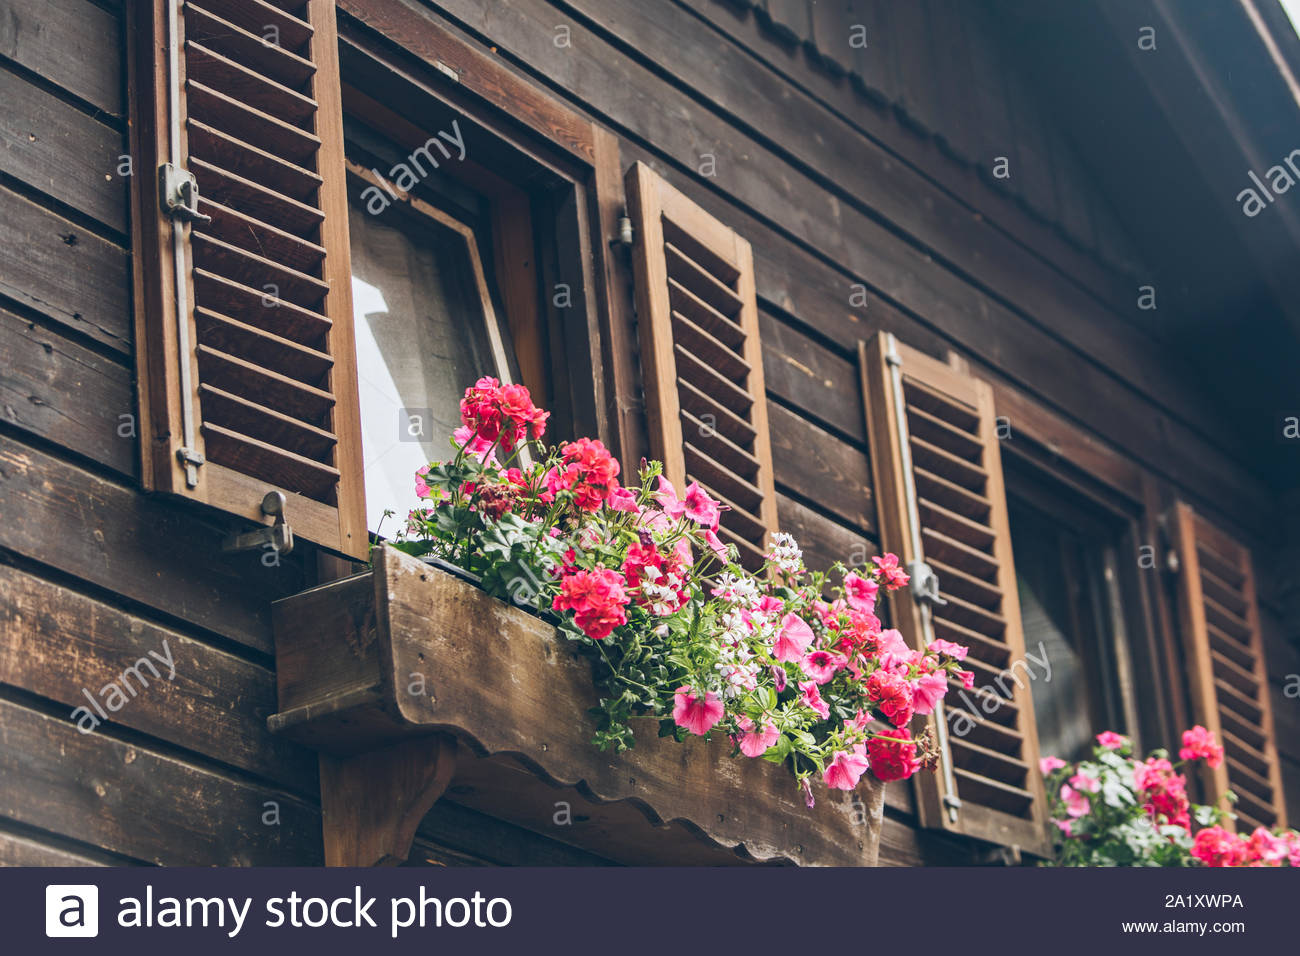 pink flowers decoration at wooden windows with shutters 2A1XWPA